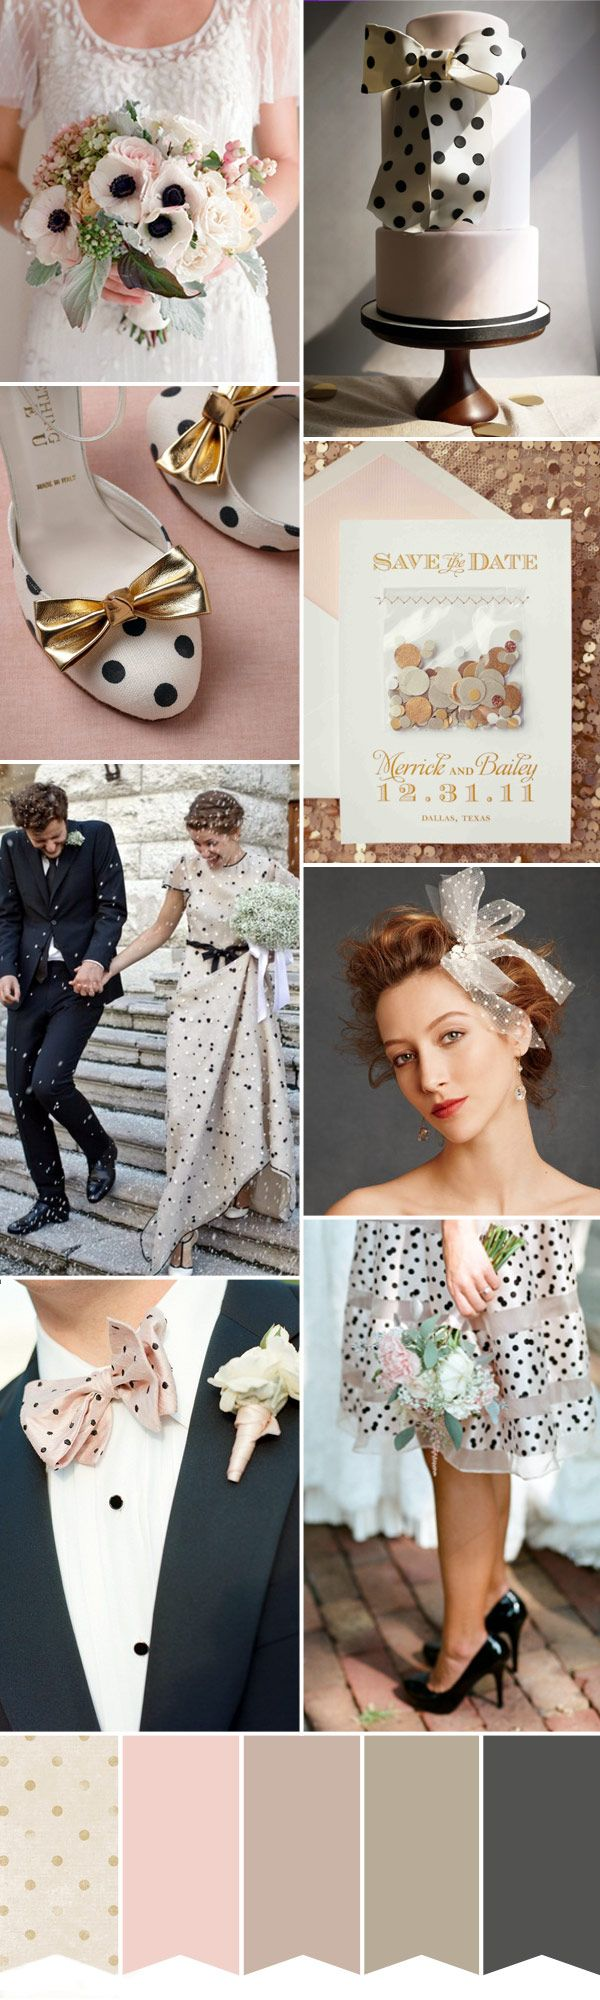 That's really really nice pallette because of the dots ..Polka-Dot-Wedding -Inspiration-Blush-Gold-and-Grey Read more on http://onefabday.com/polka-dot-wedding-inspiration/